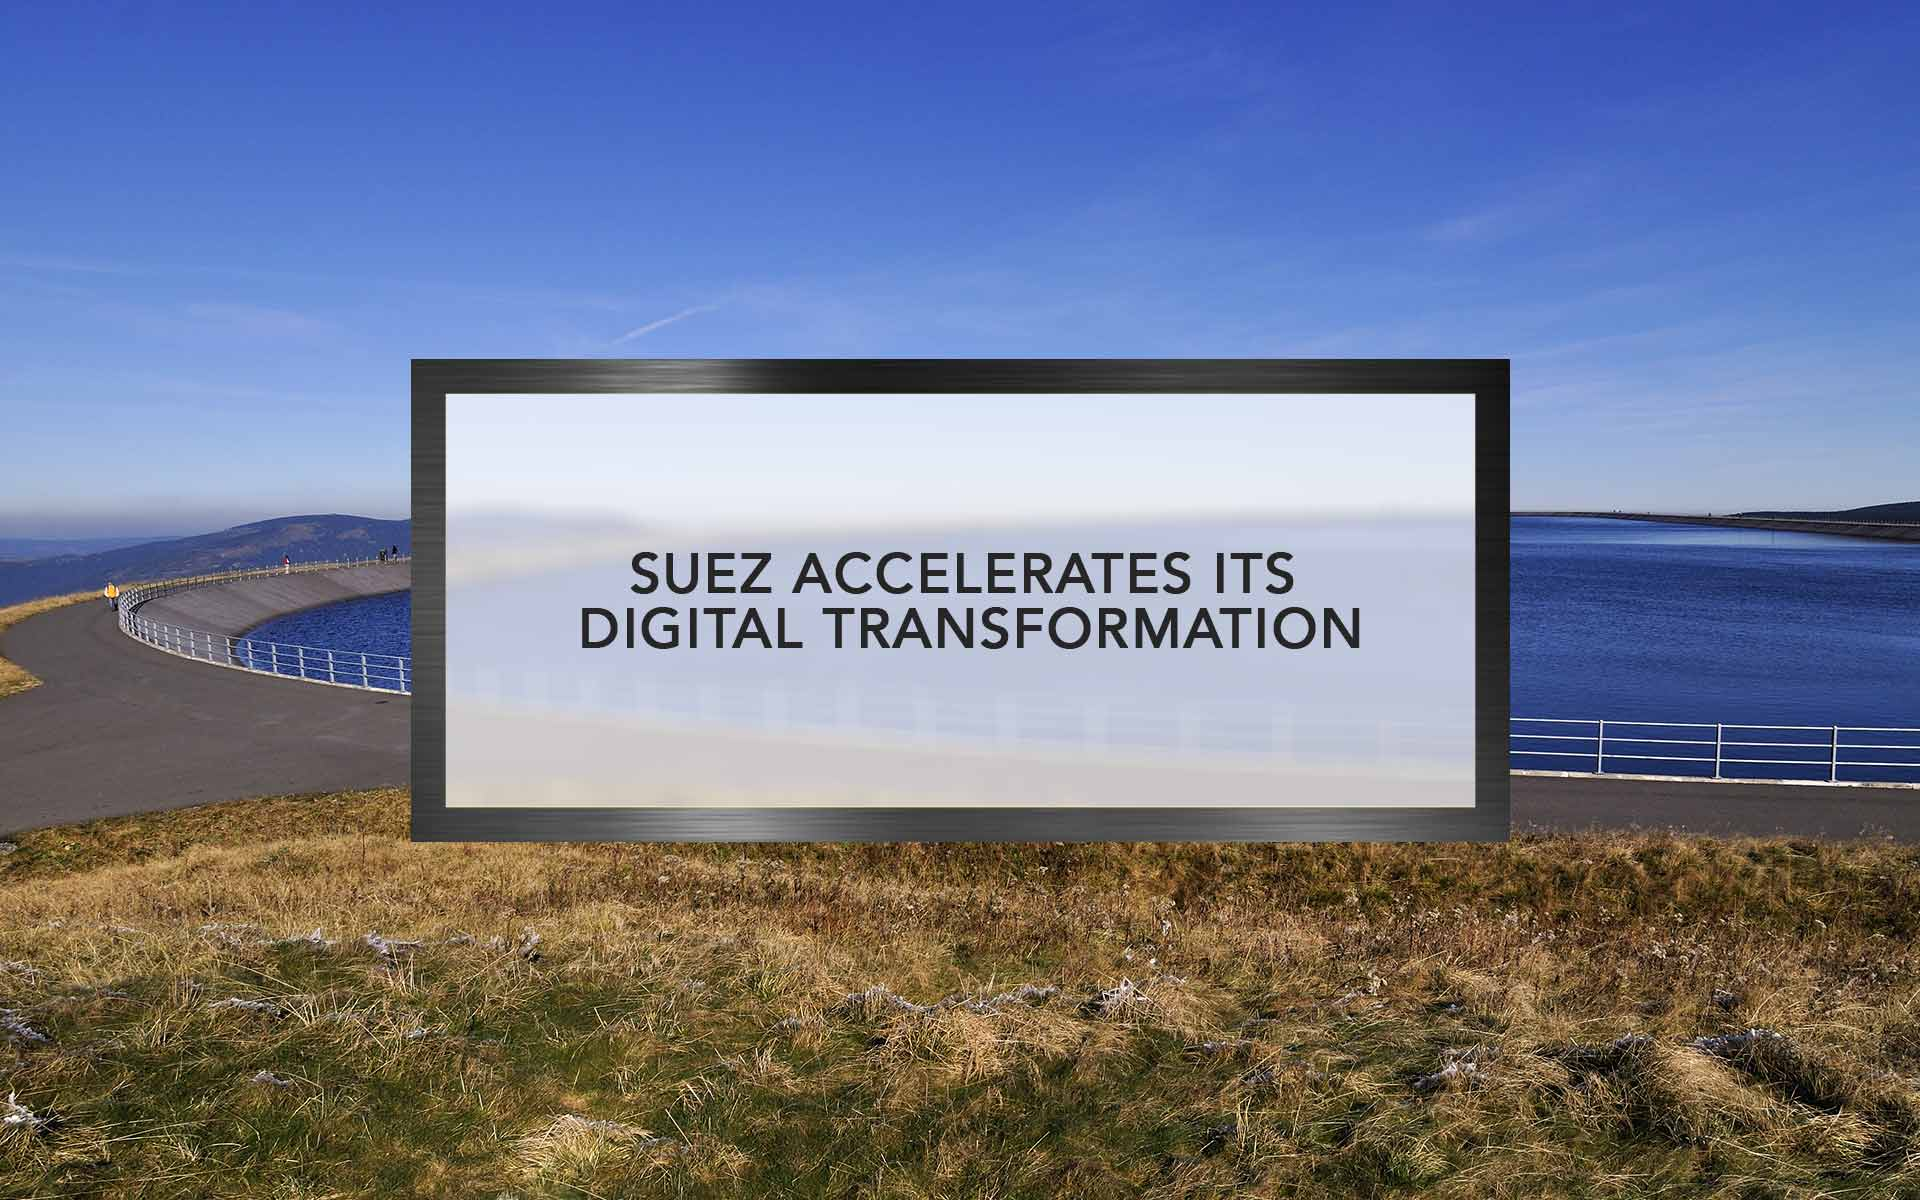 SUEZ accelerates its digital transformation